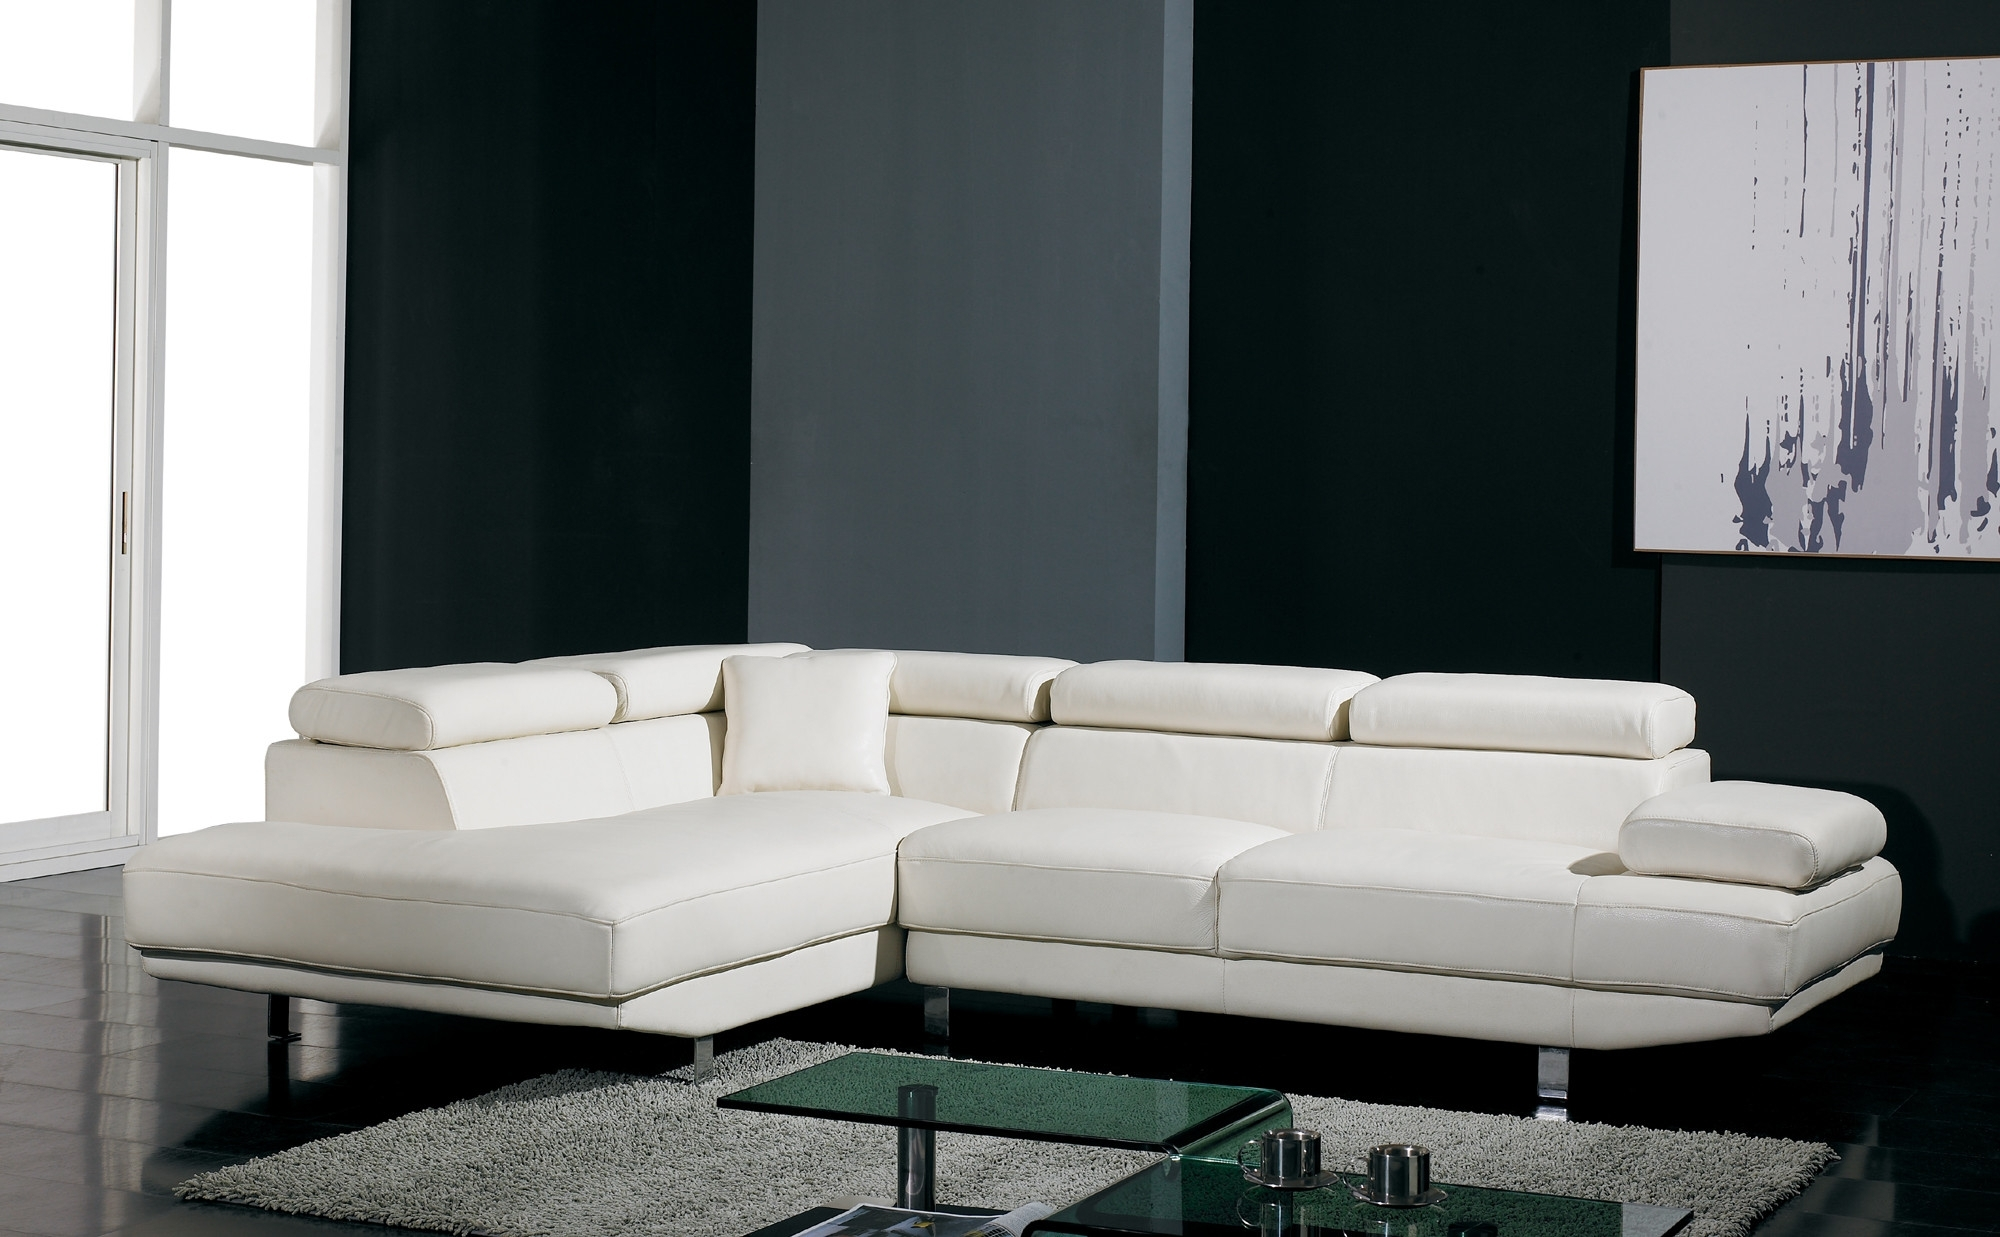 Fashionable Modern Sectional Sofas With Regard To T60 – Ultra Modern White Leather Sectional Sofa (View 8 of 20)